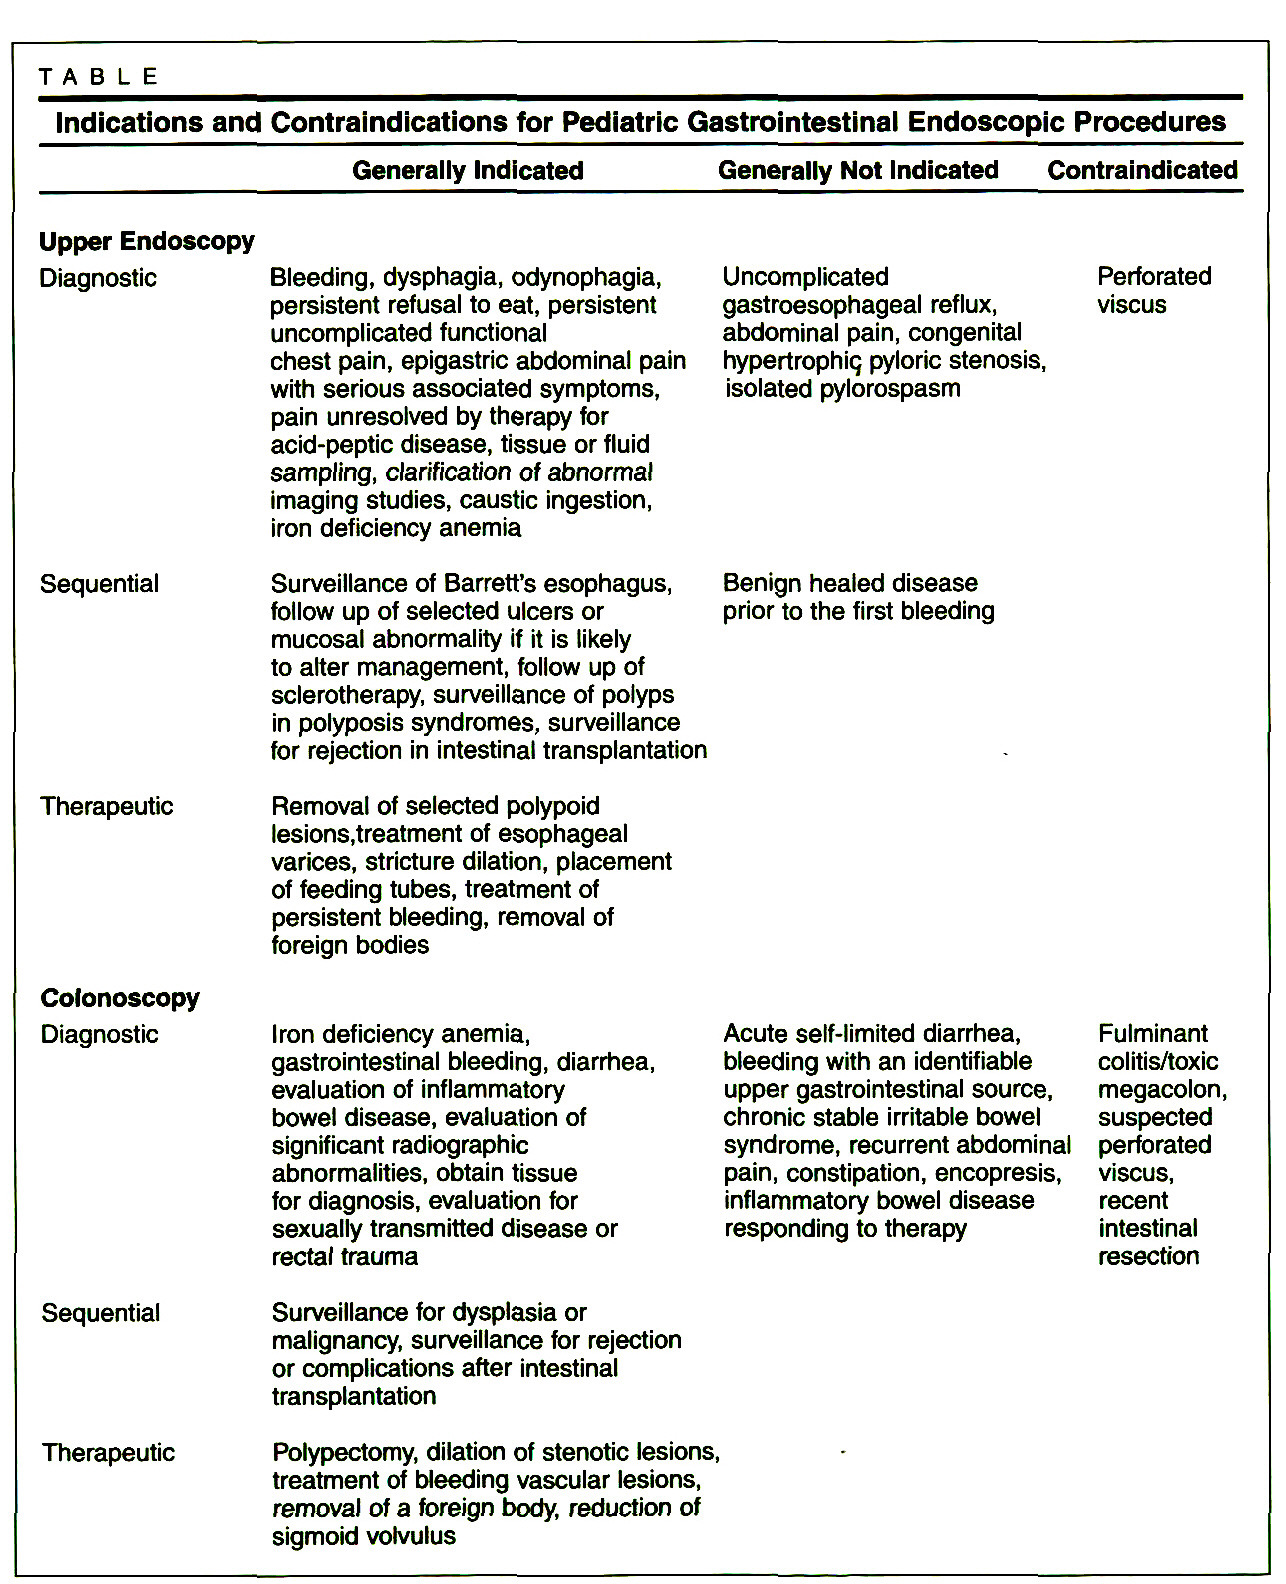 TABLEIndications and Contraindications for Pediatric Gastrointestinal Endoscopic Procedures